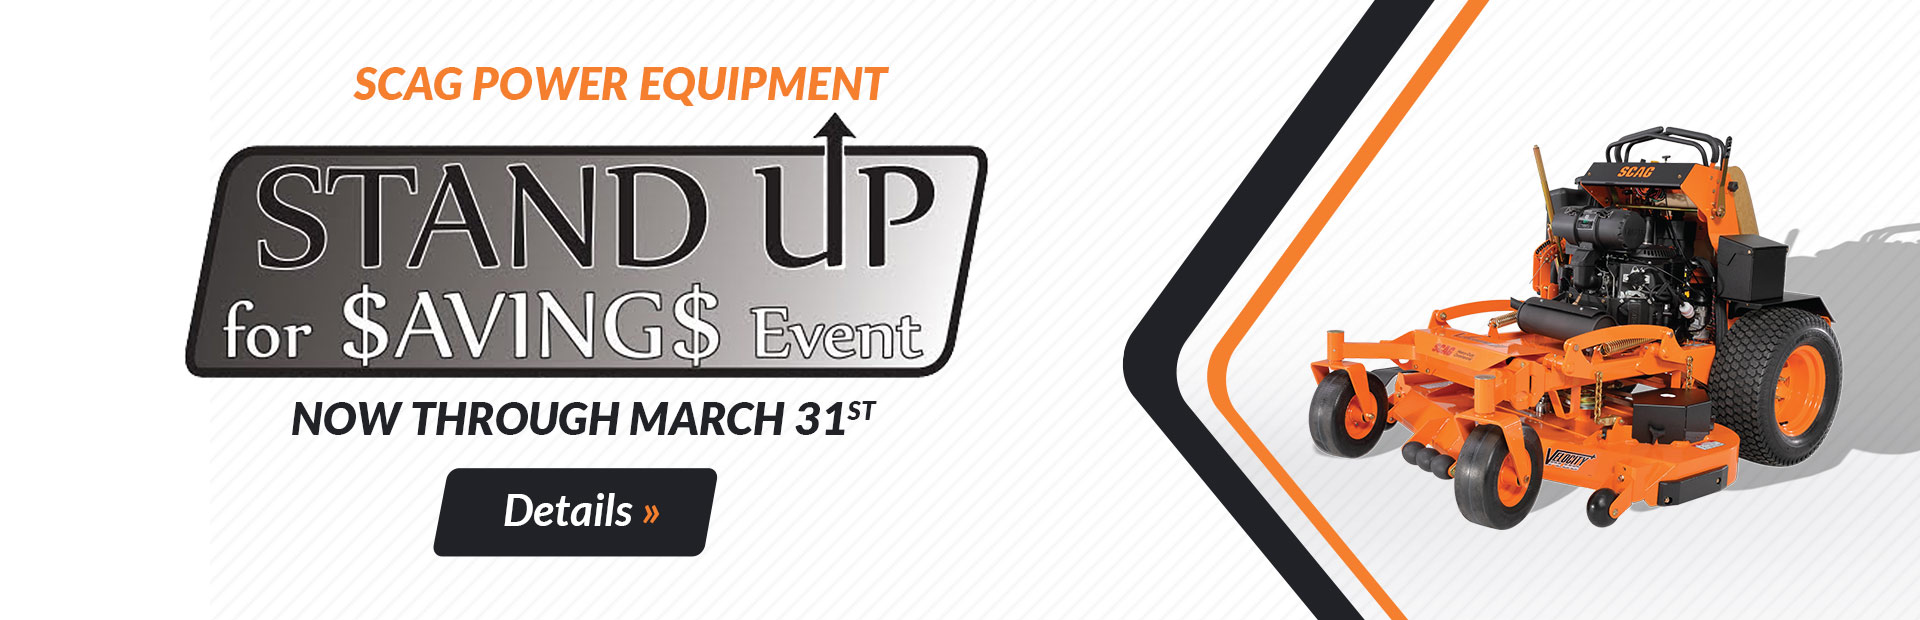 Scag Power Equipment Stand Up for Savings event now through the end of March. Click here for details